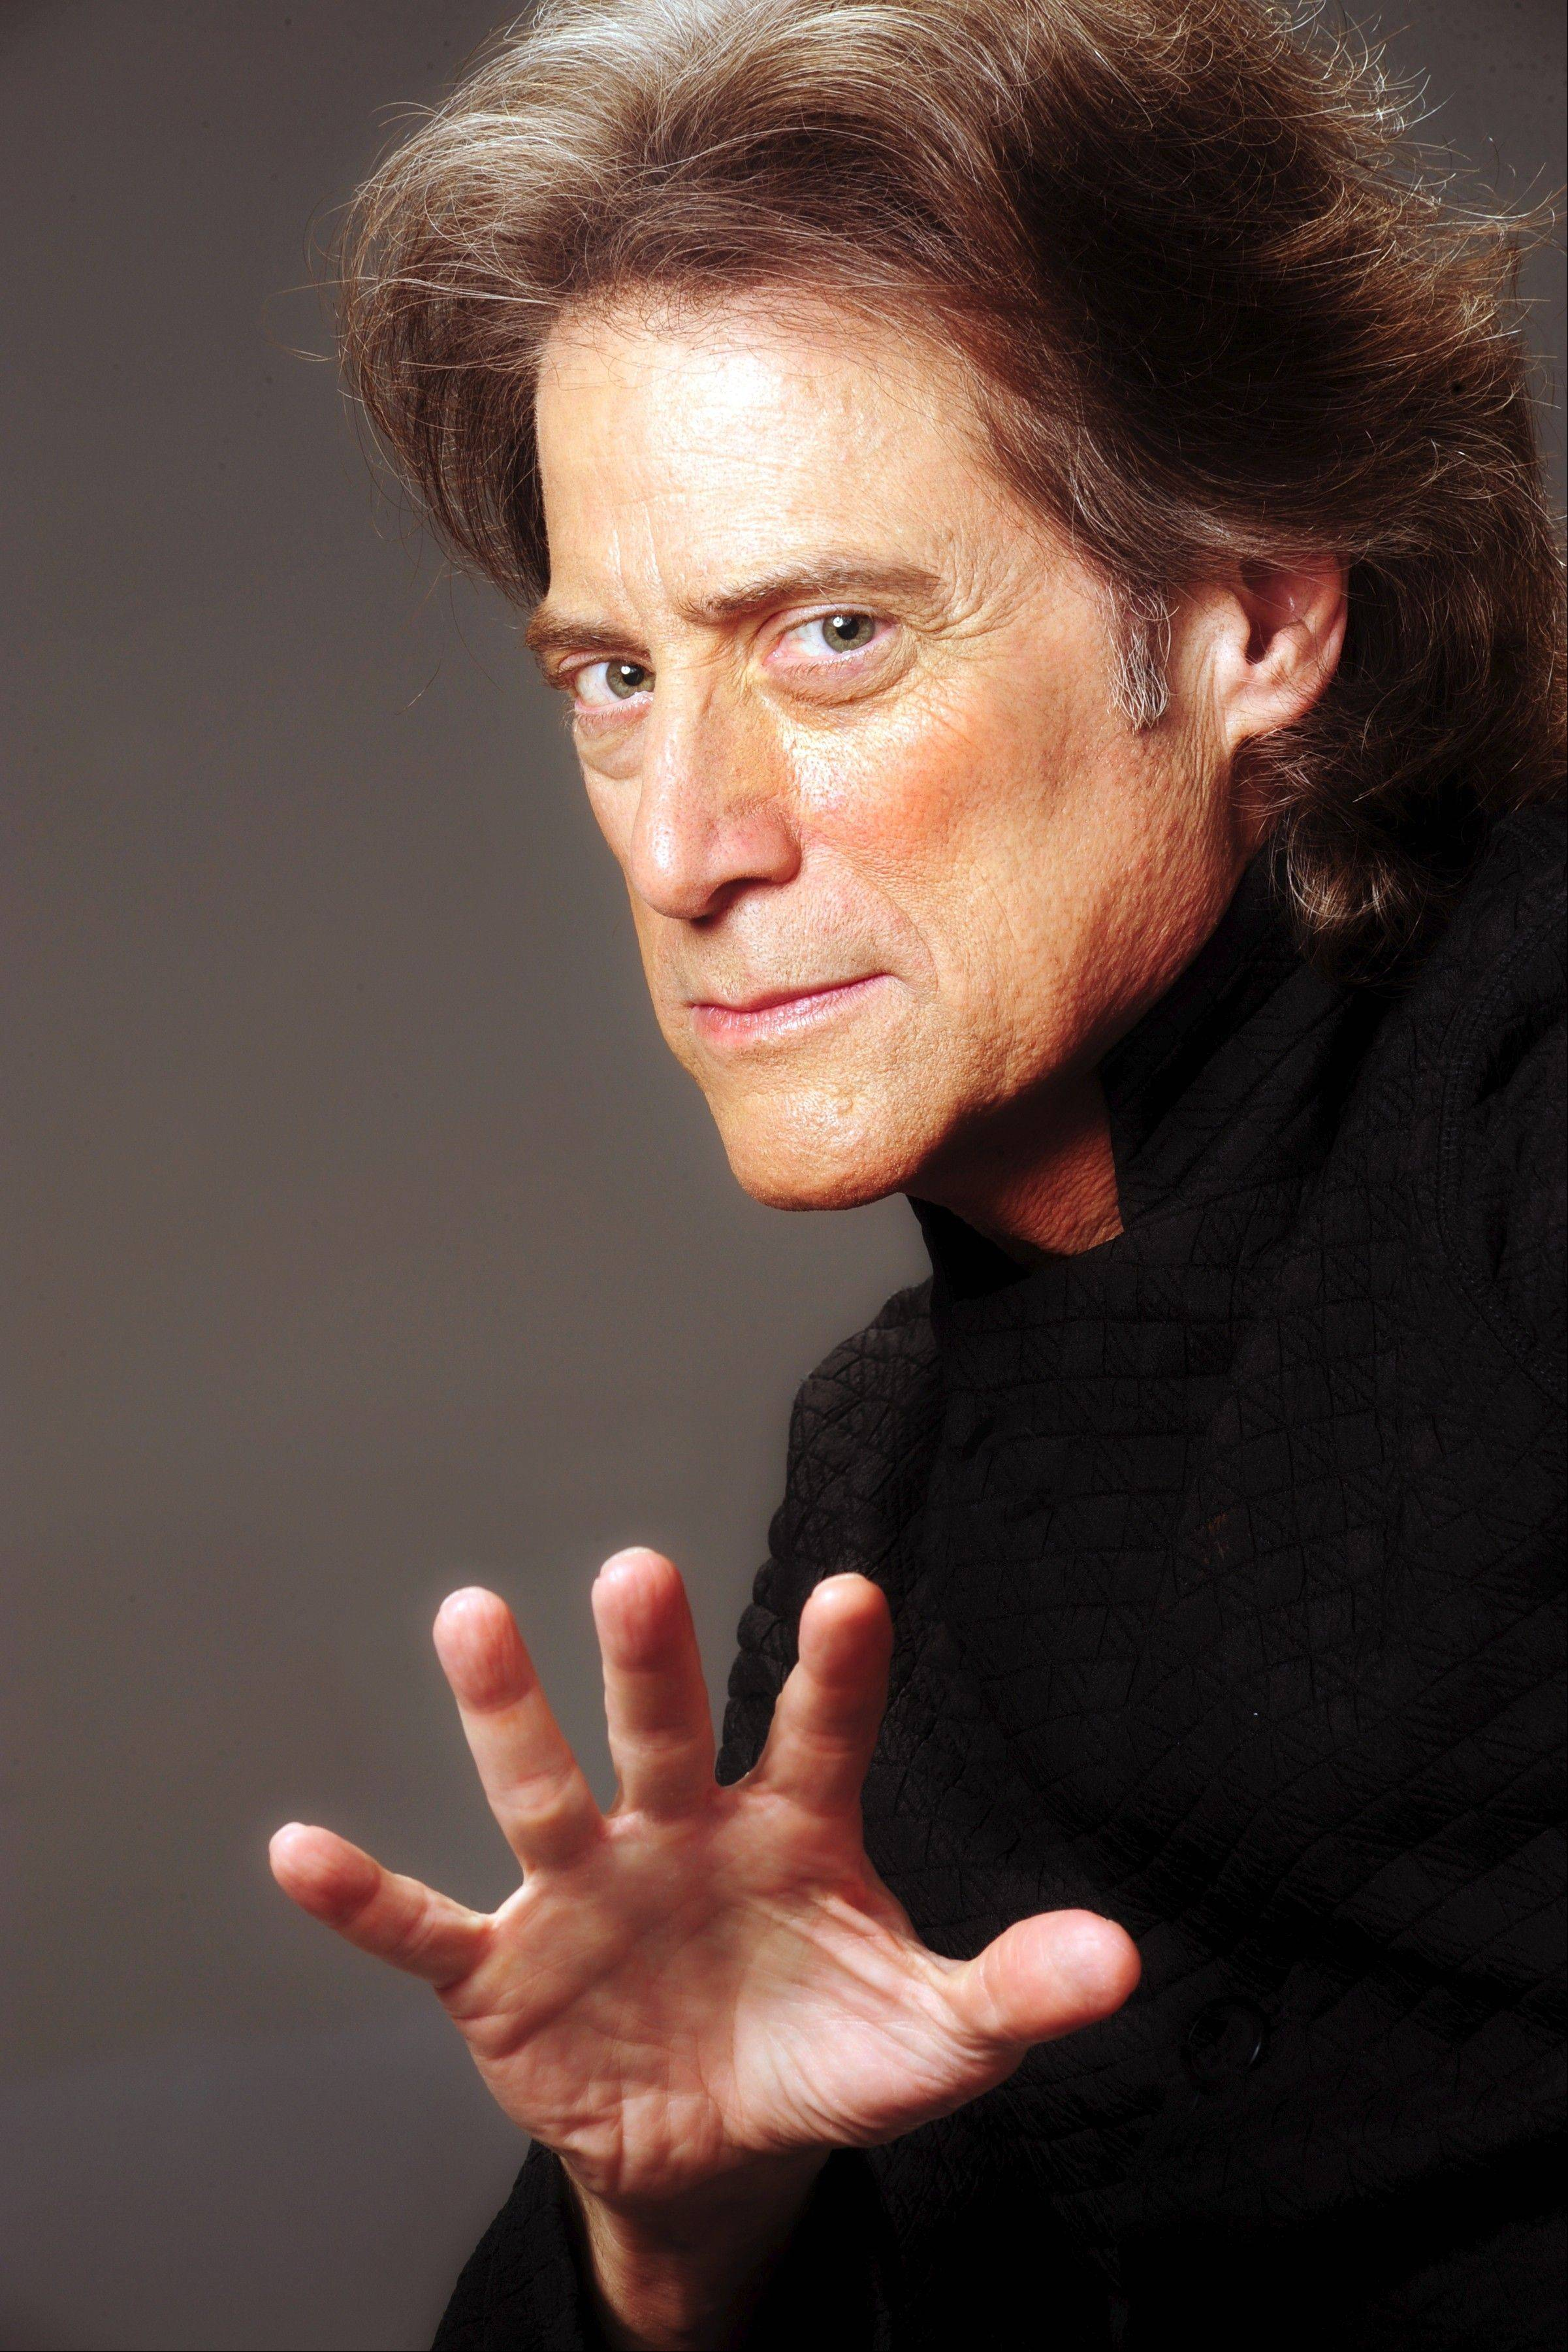 Richard Lewis is set to headline at Zanies in Rosemont.